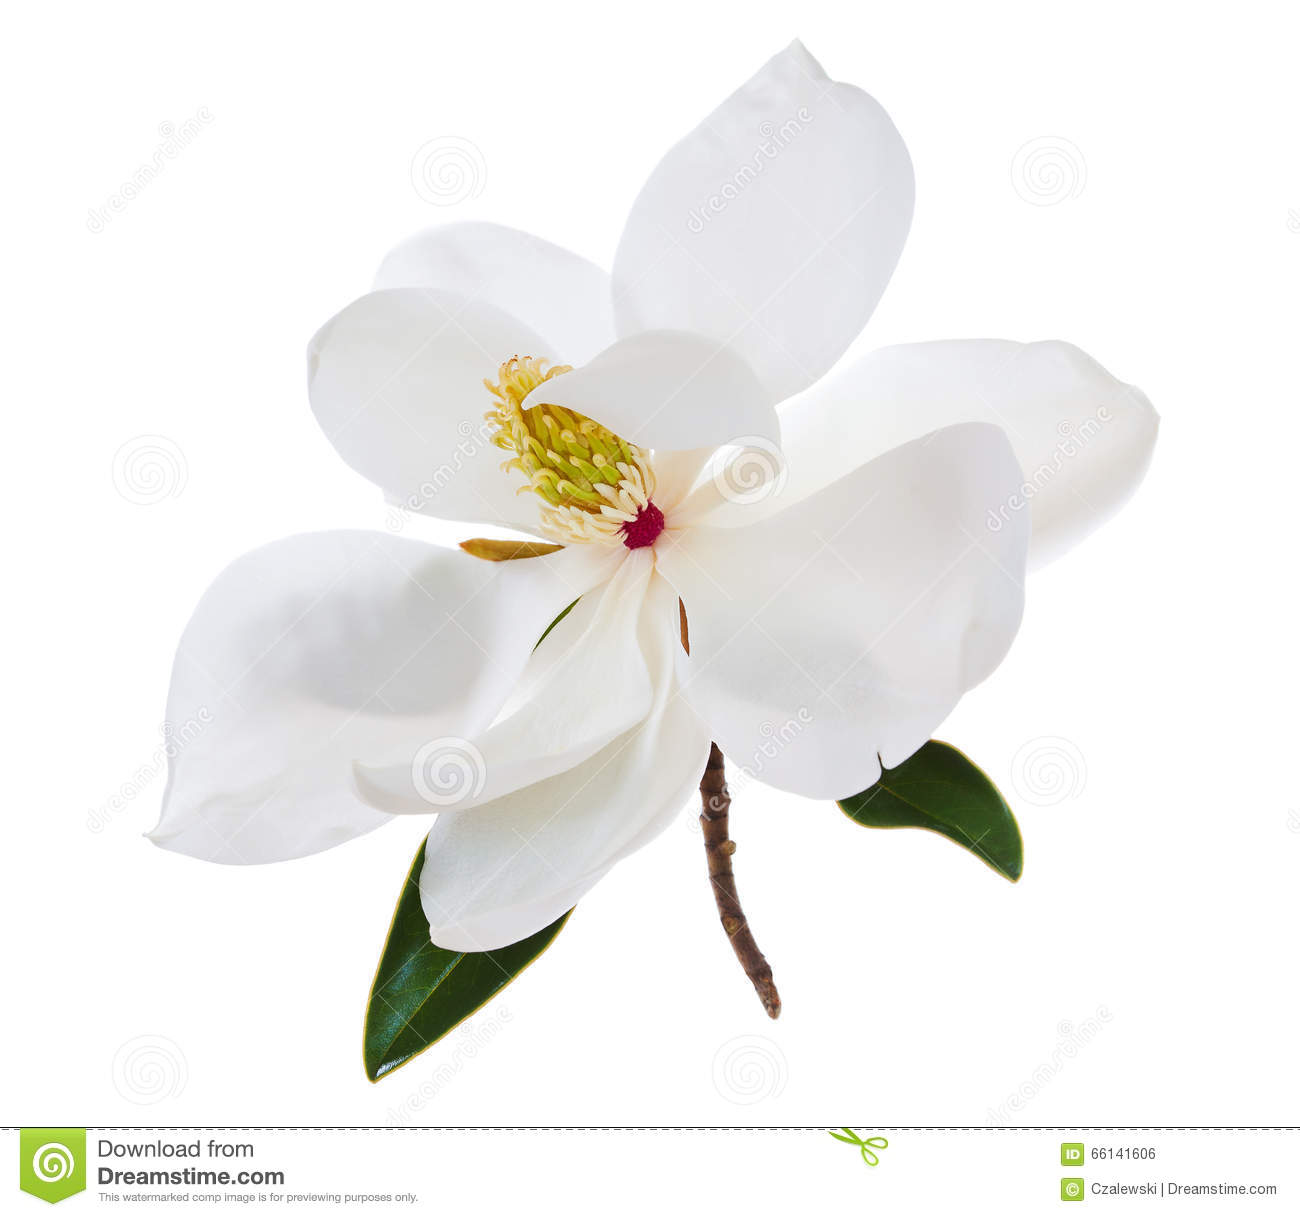 White magnolia flower magnolias flower stock photo image of download white magnolia flower magnolias flower stock photo image of flowers white 66141606 mightylinksfo